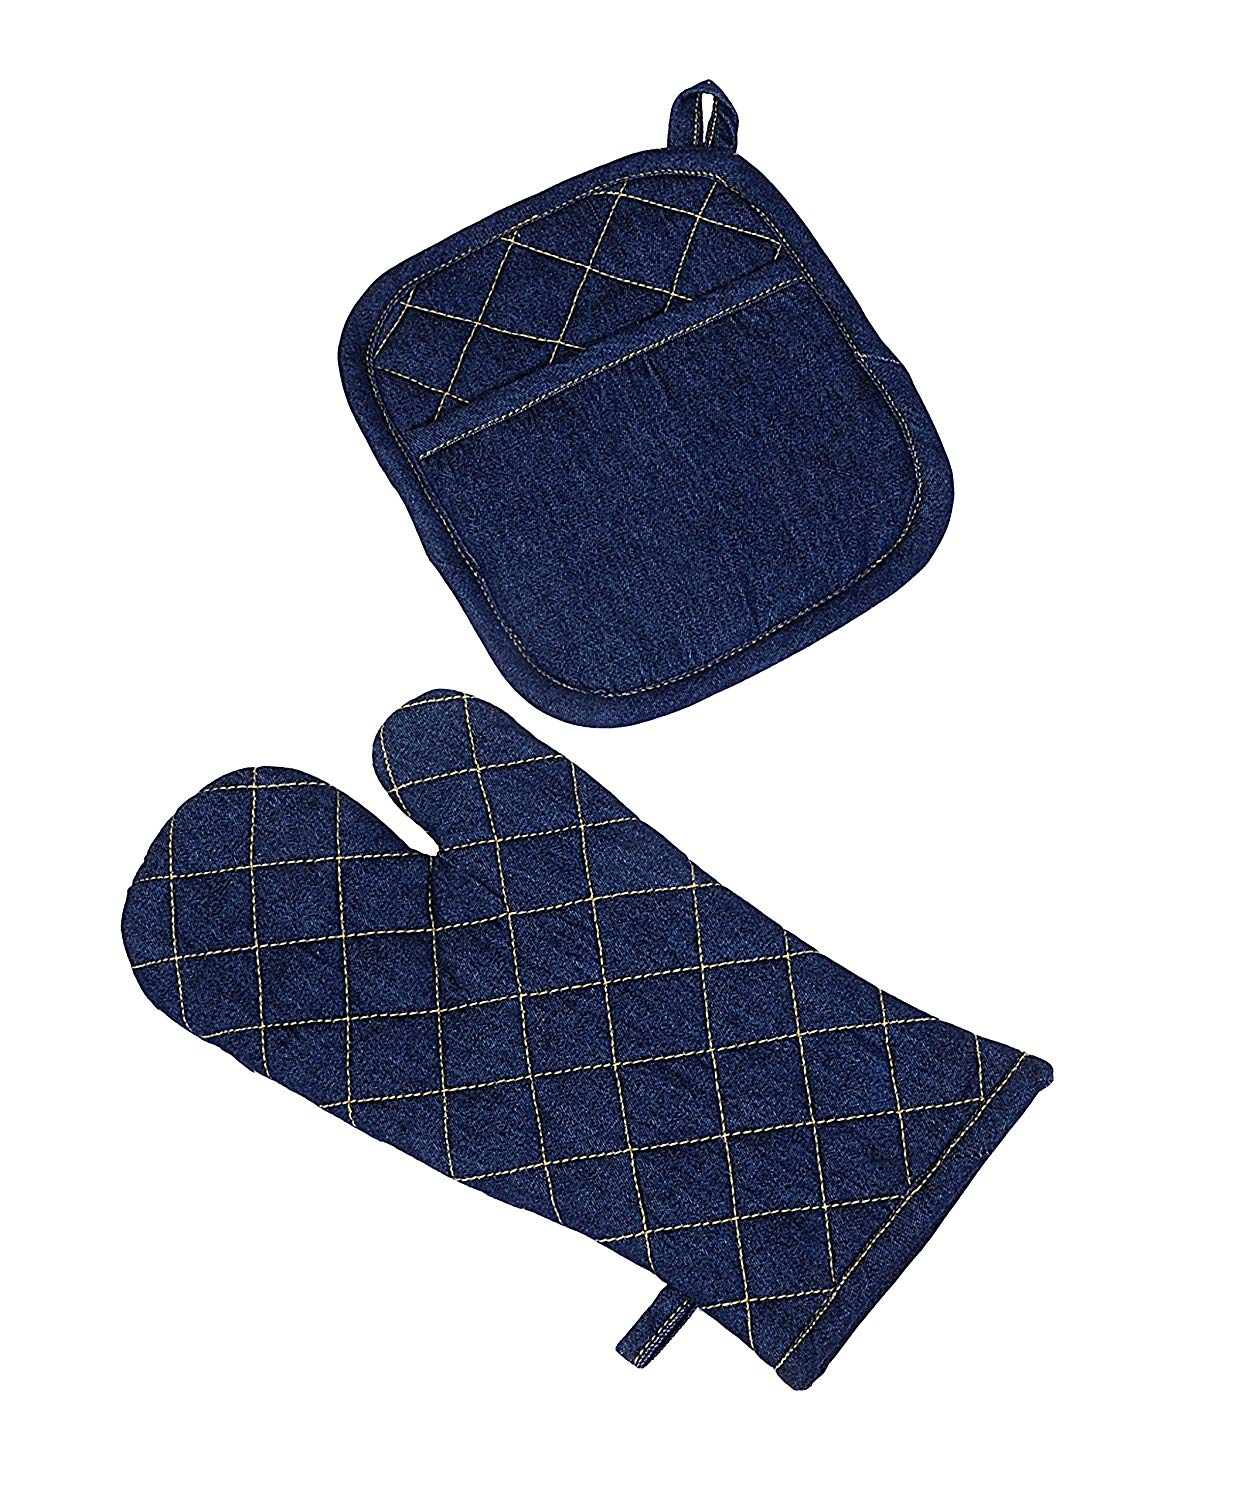 Yourtablecloth Set of Denim Oven Mitt and Pot Holder or Oven Gloves-100% Cotton, Comfortable –Machine Washable-Great for Barbecuing and Serving